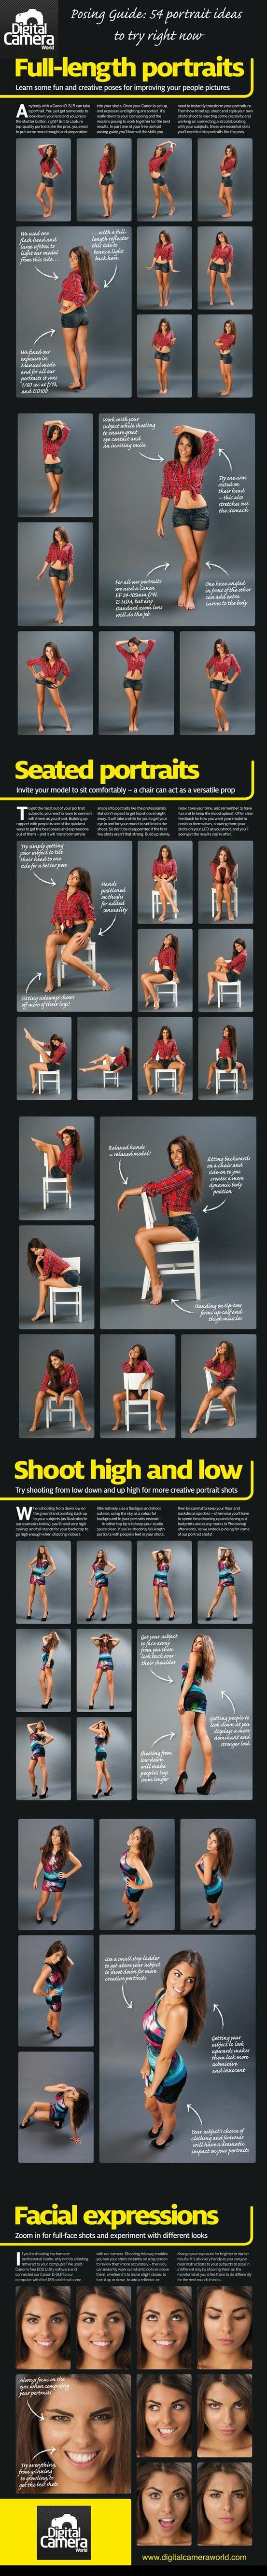 a great portrait guide for models, boudoir shoots, pinup shoots, senior portraits or prom pictures! #beauty #photography